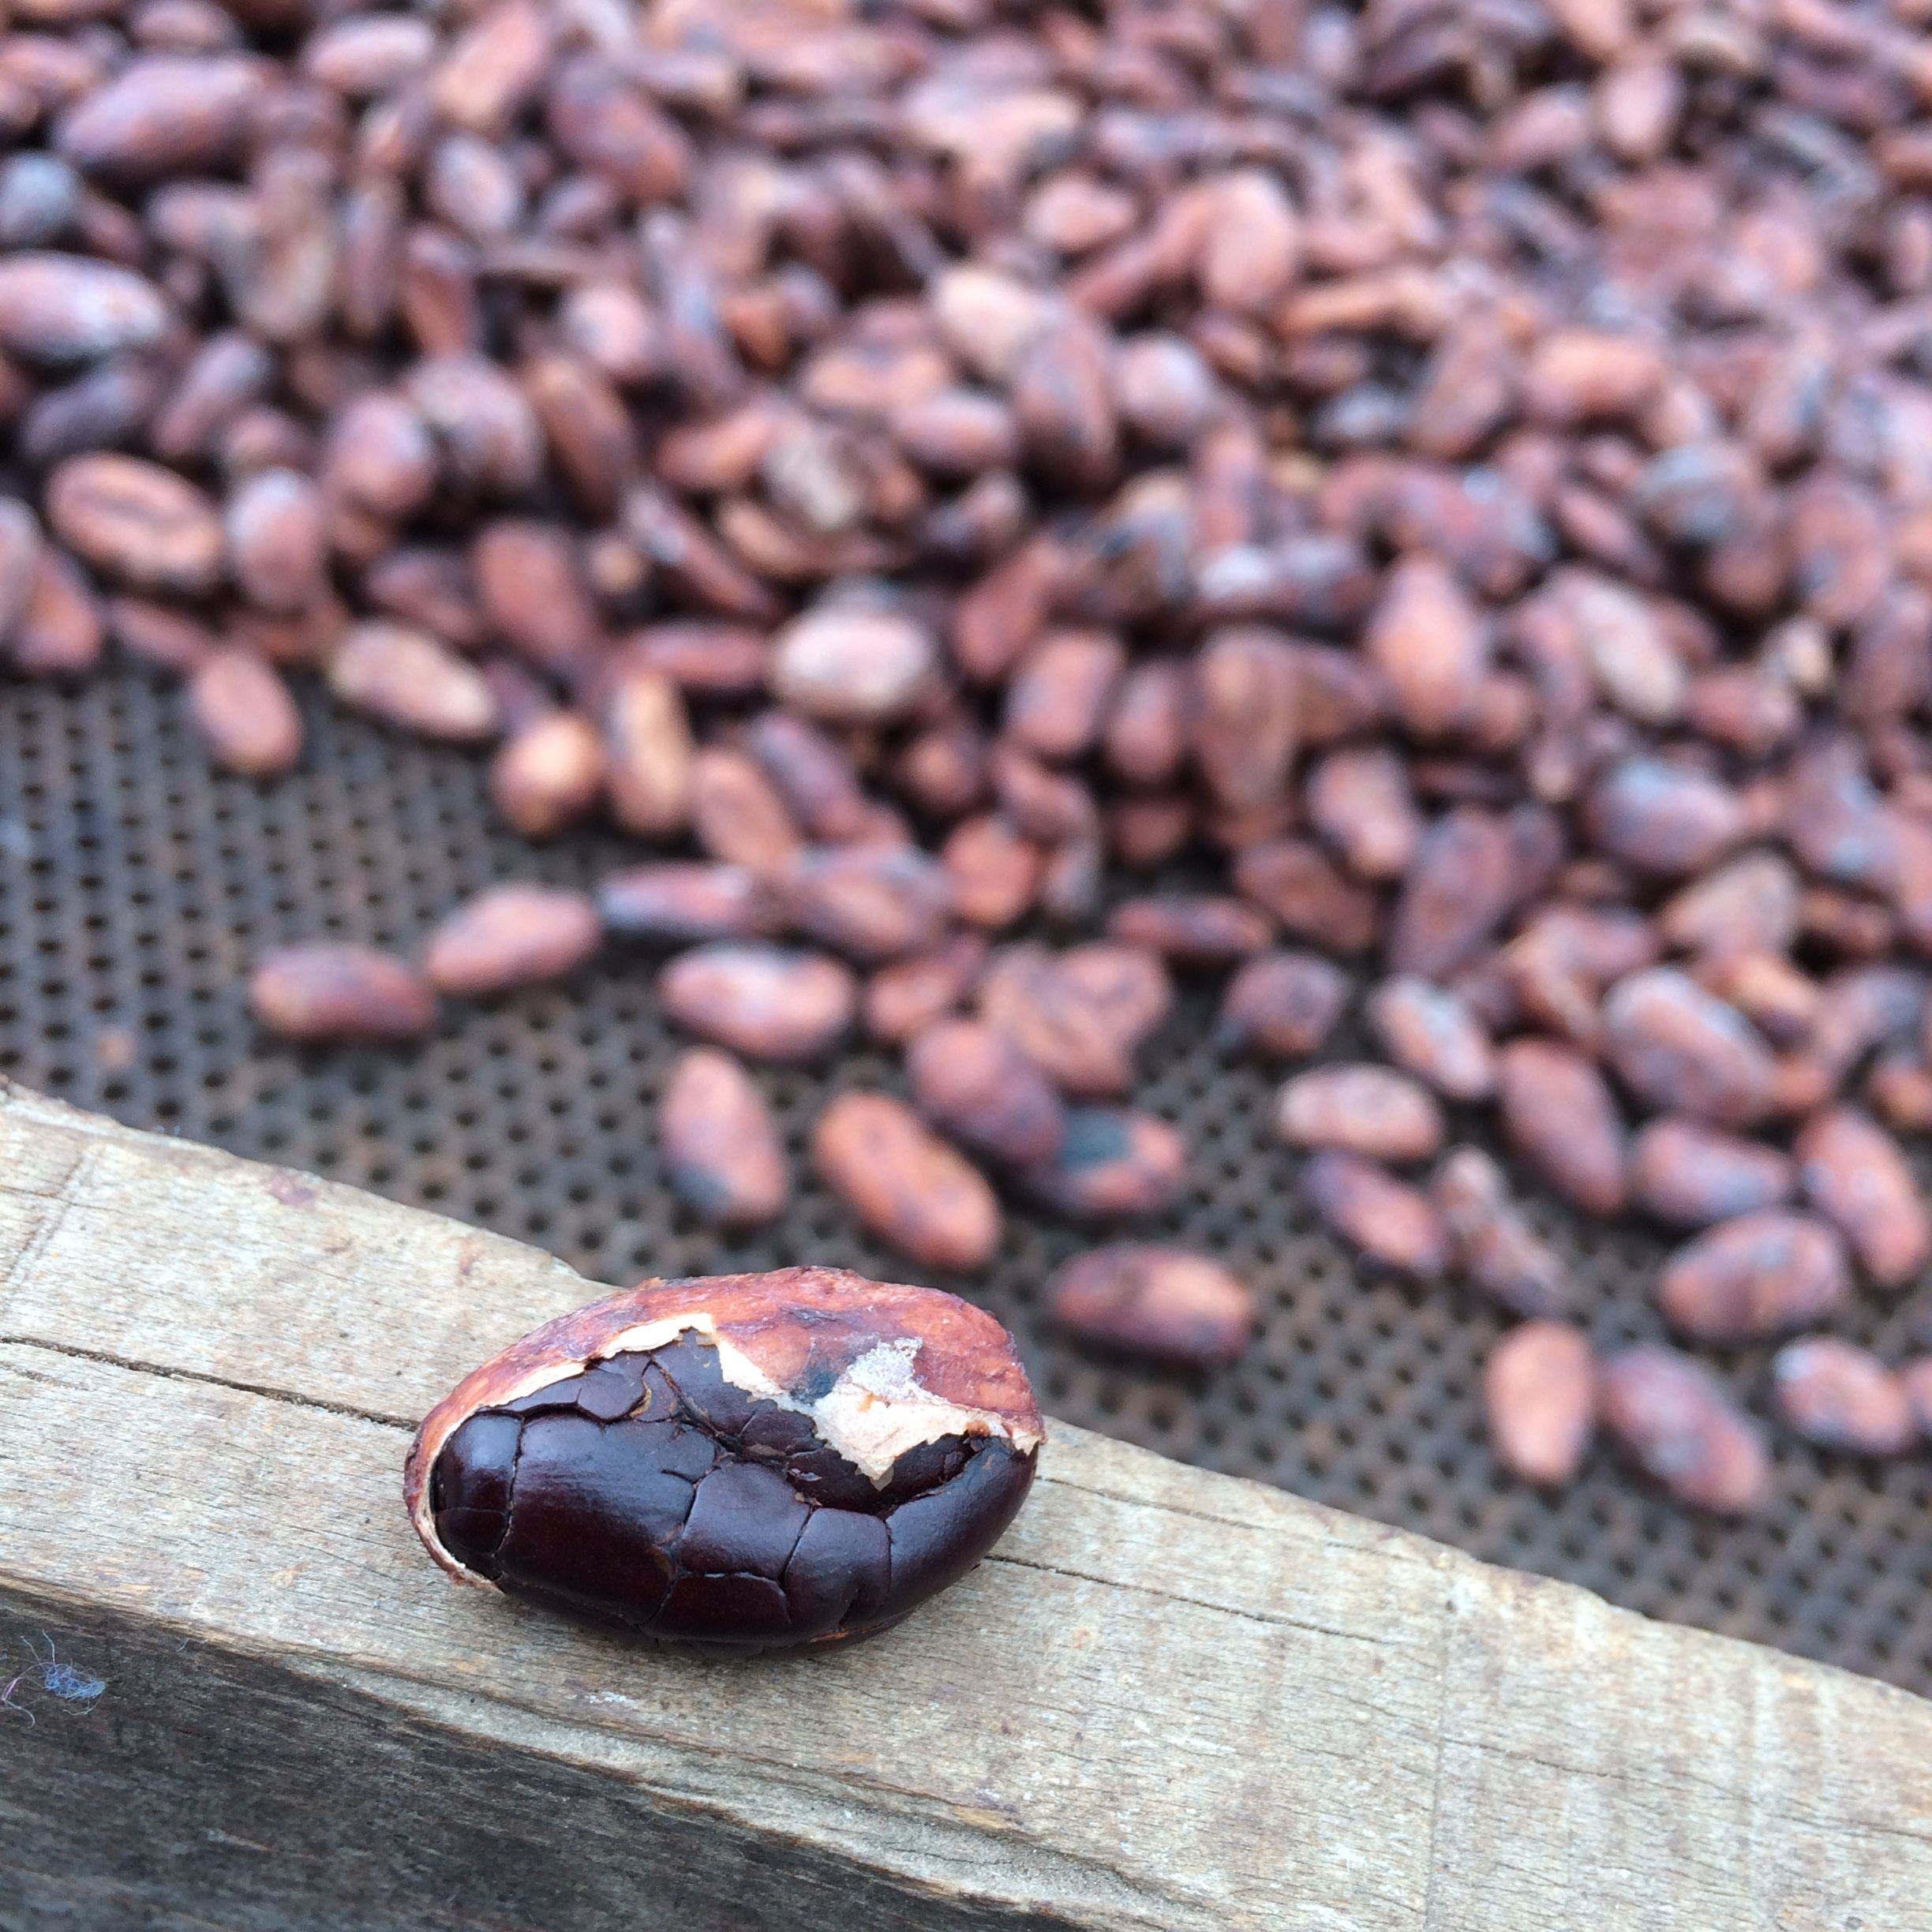 A half peeled cocoa bean after being dried for a week. This bean has finished drying as its moisture content is now down to 6-7%. The cocoa farmers can tell when the beans are ready by the sound they make when dropped. These beans are then bagged up and sent to the chocolate makers. The shells are removed as part of the bean to bar process.